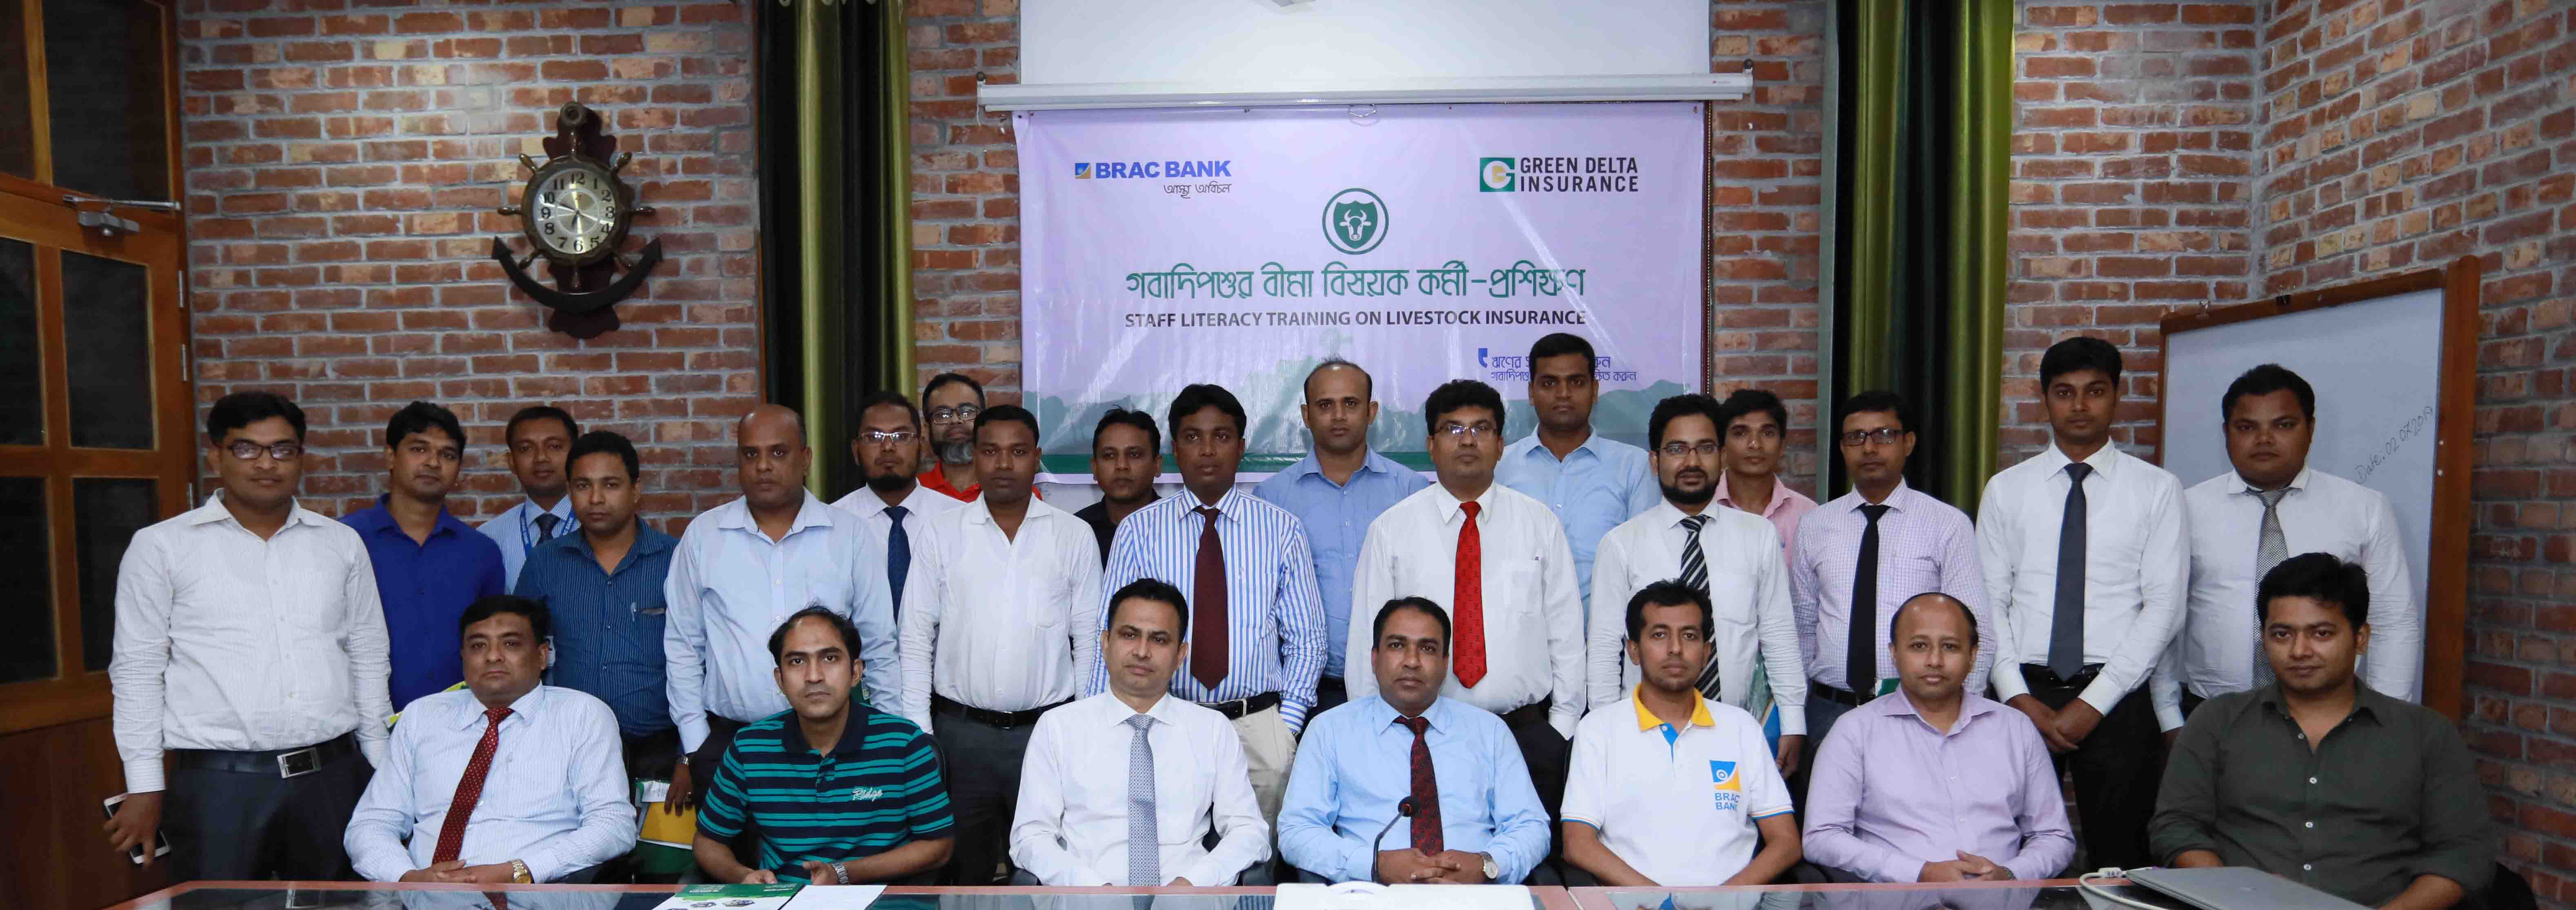 BRAC Bank, Green Delta partner for insurance awareness among Jashore livestock farmers